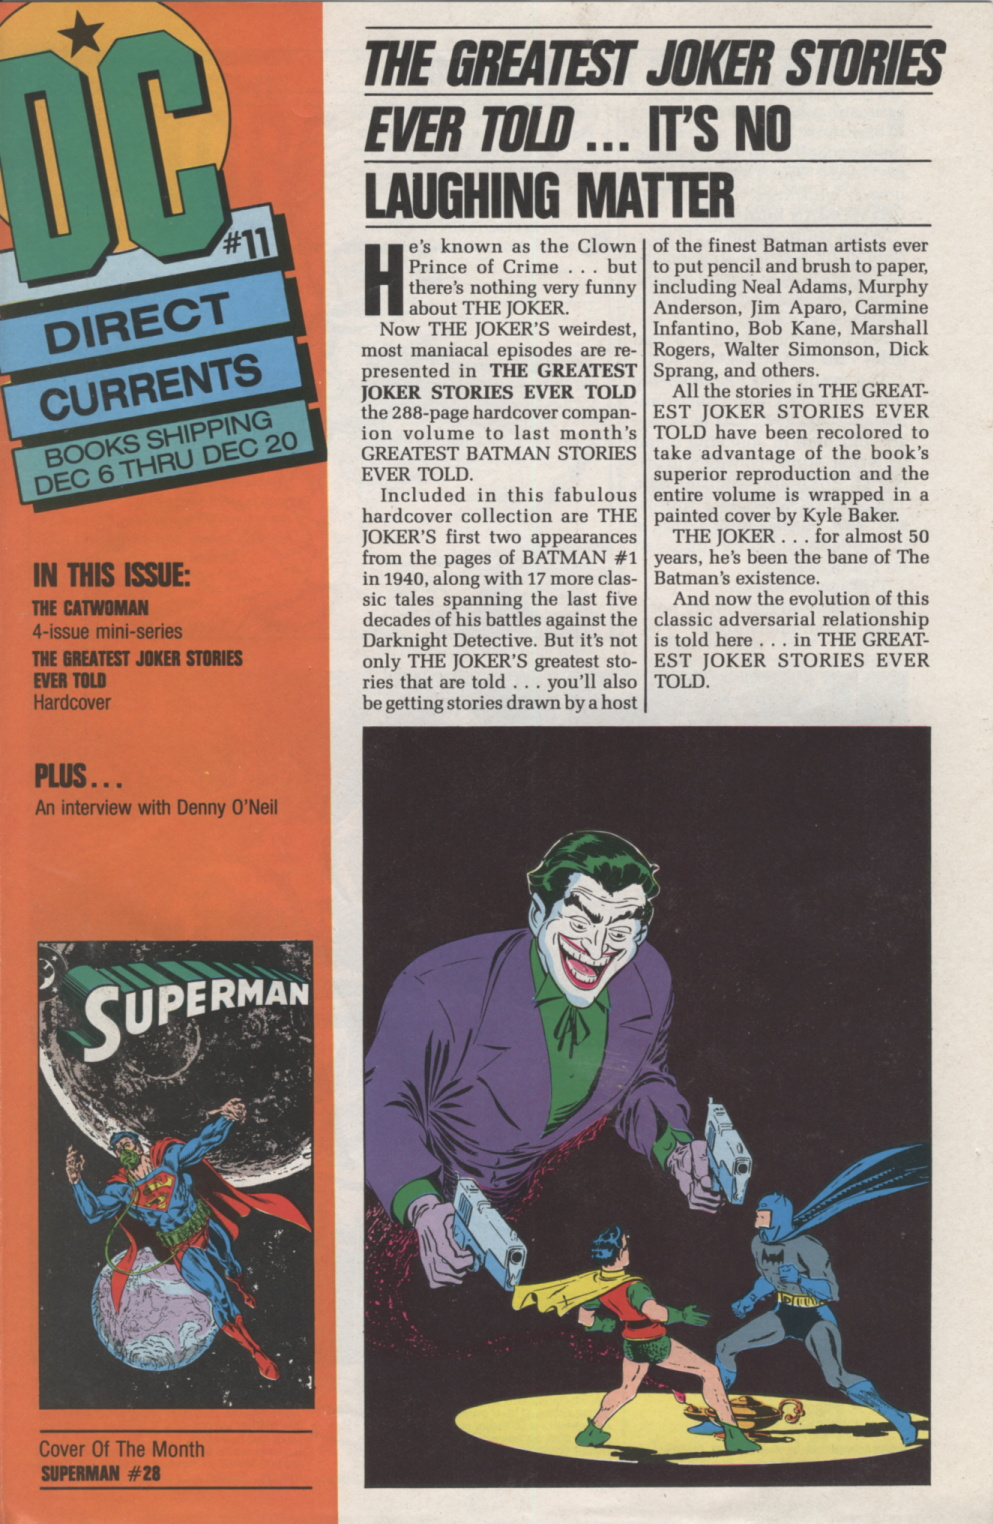 Time Capsule: DC Direct Currents 11, November 1988